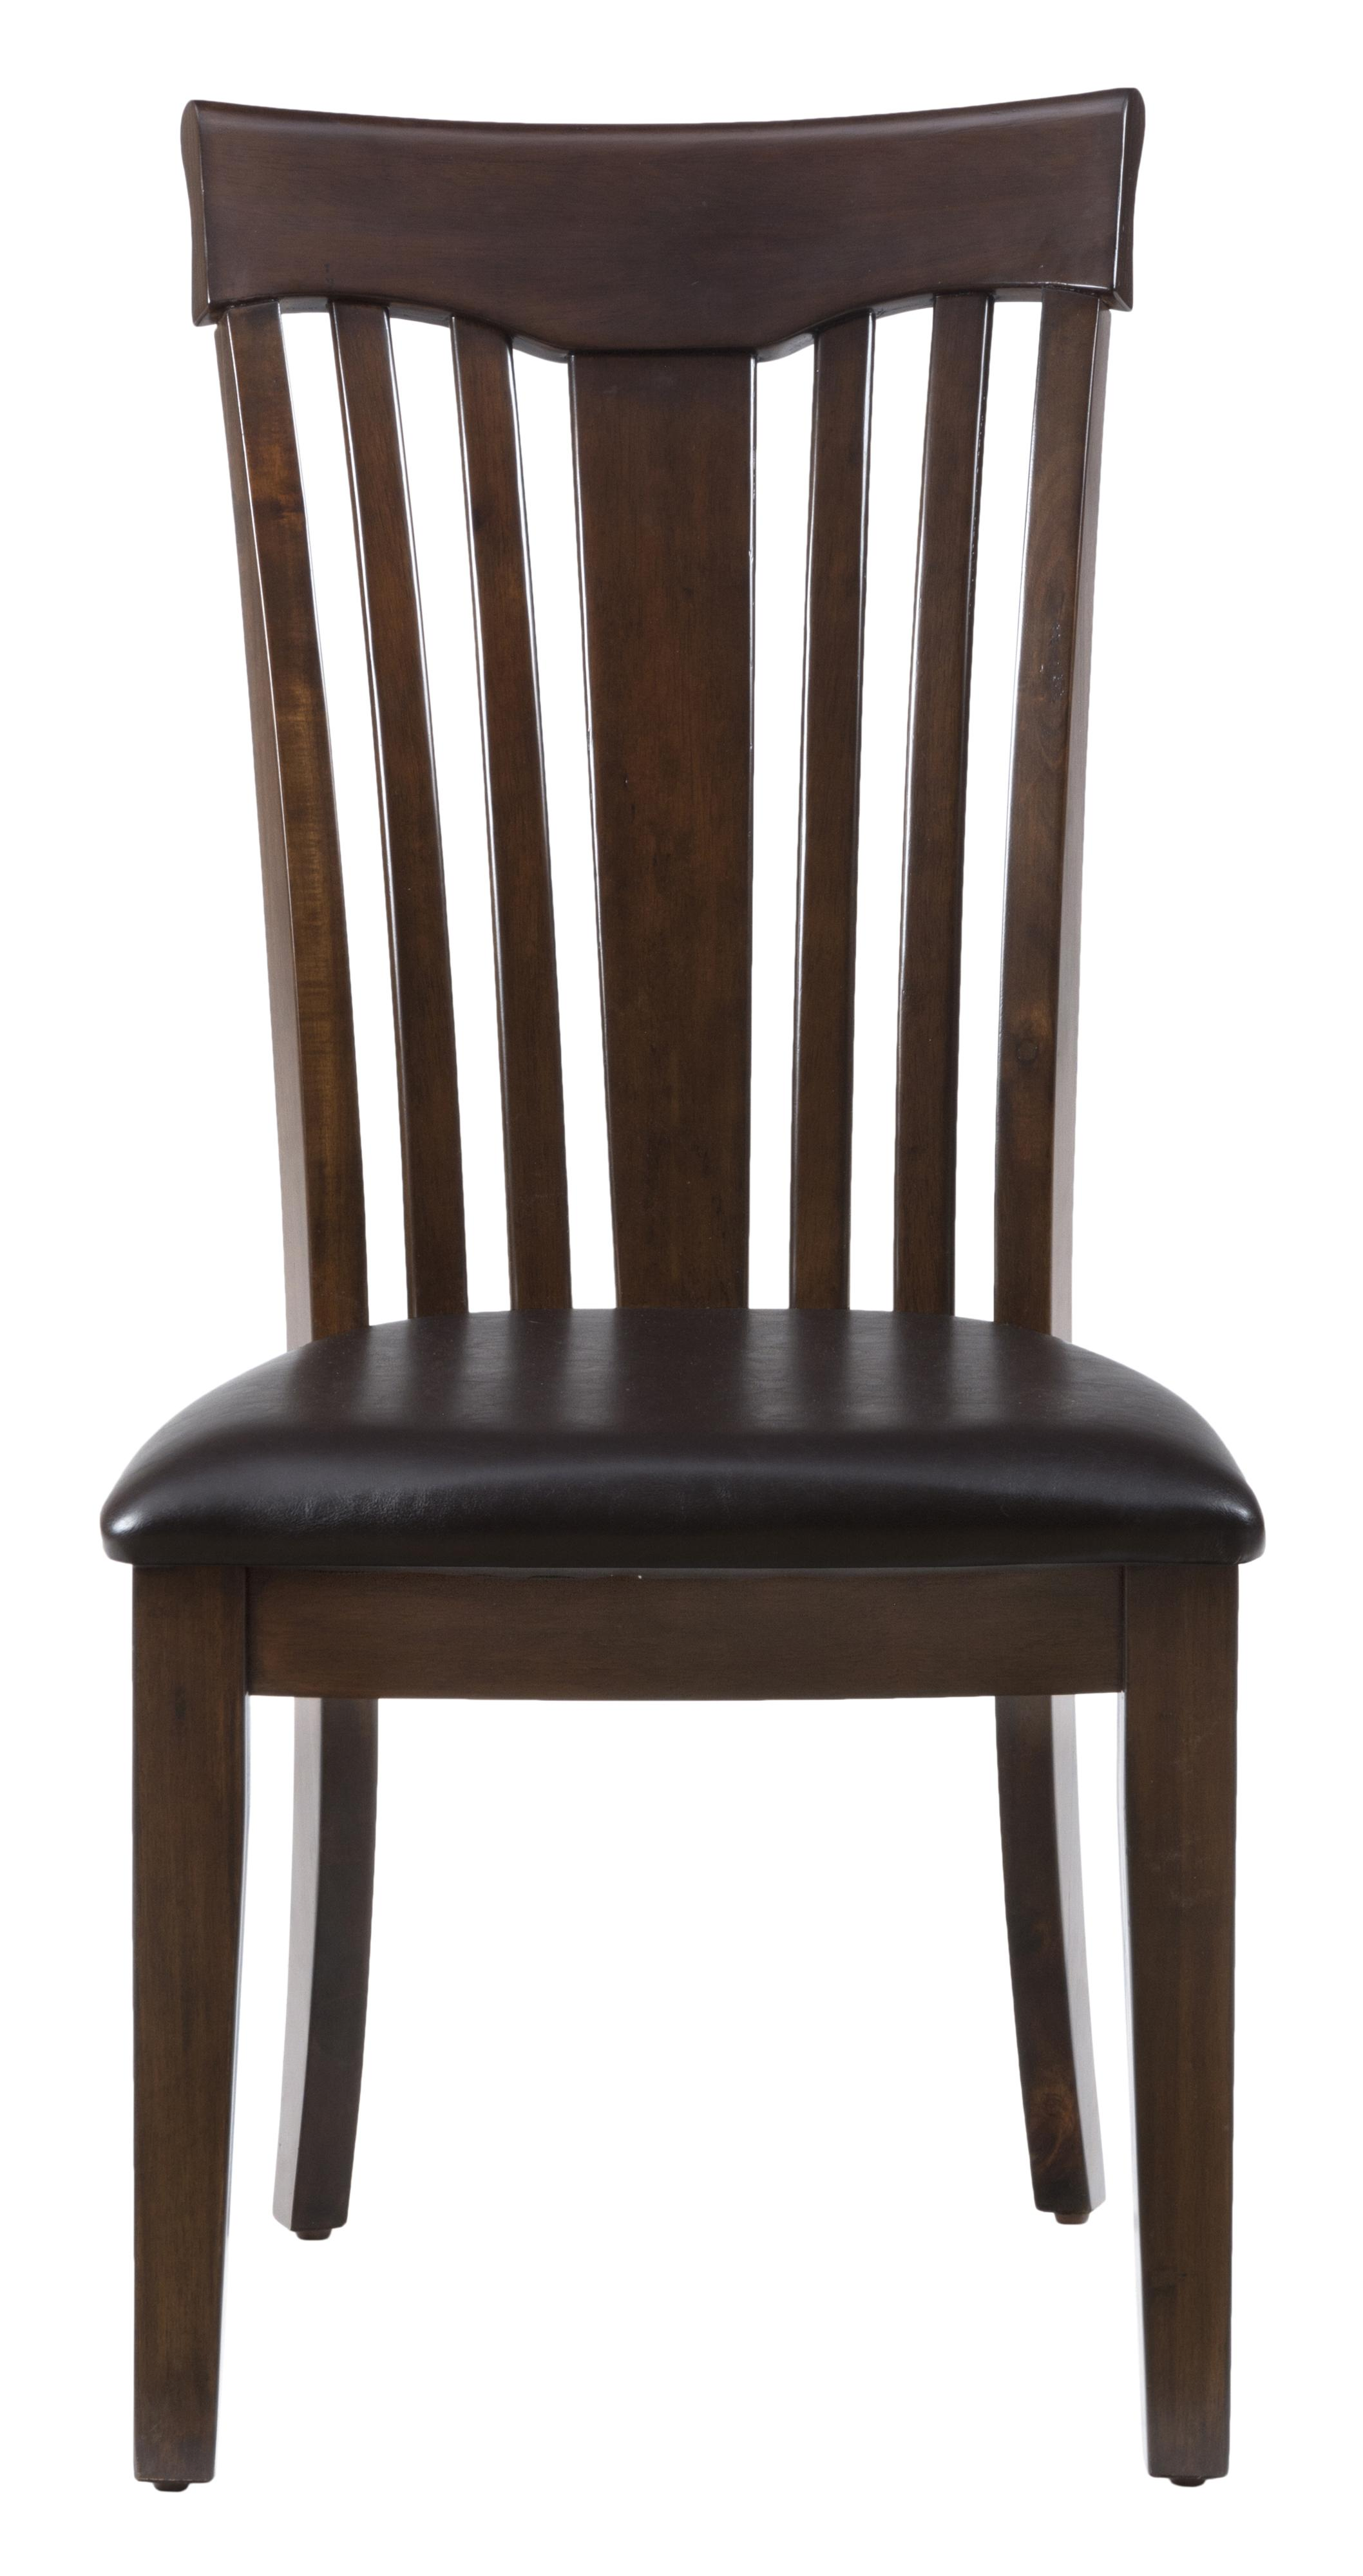 Jofran Mirandela Birch Contoured Slat Back Chair - Item Number: 836-947KD